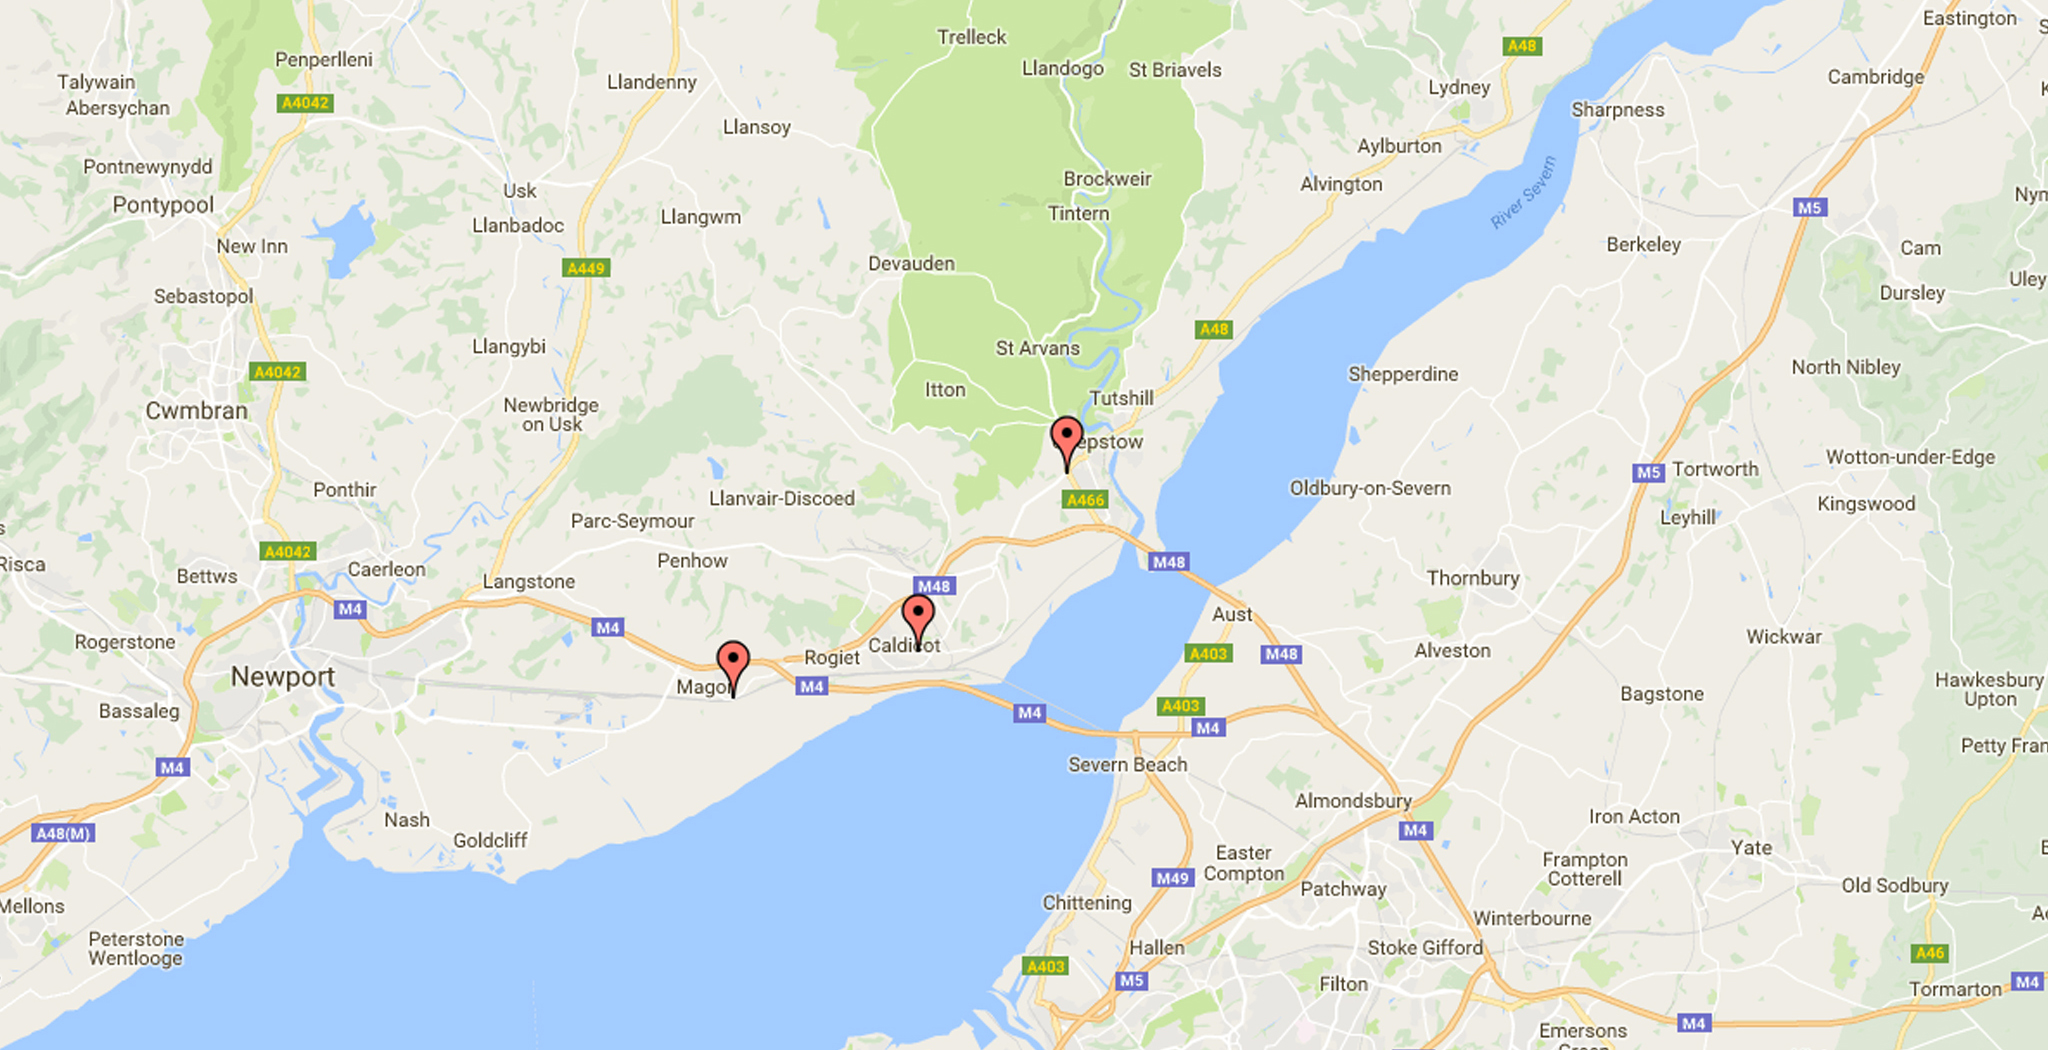 Map showing locations of Marlow Vet Surgeries